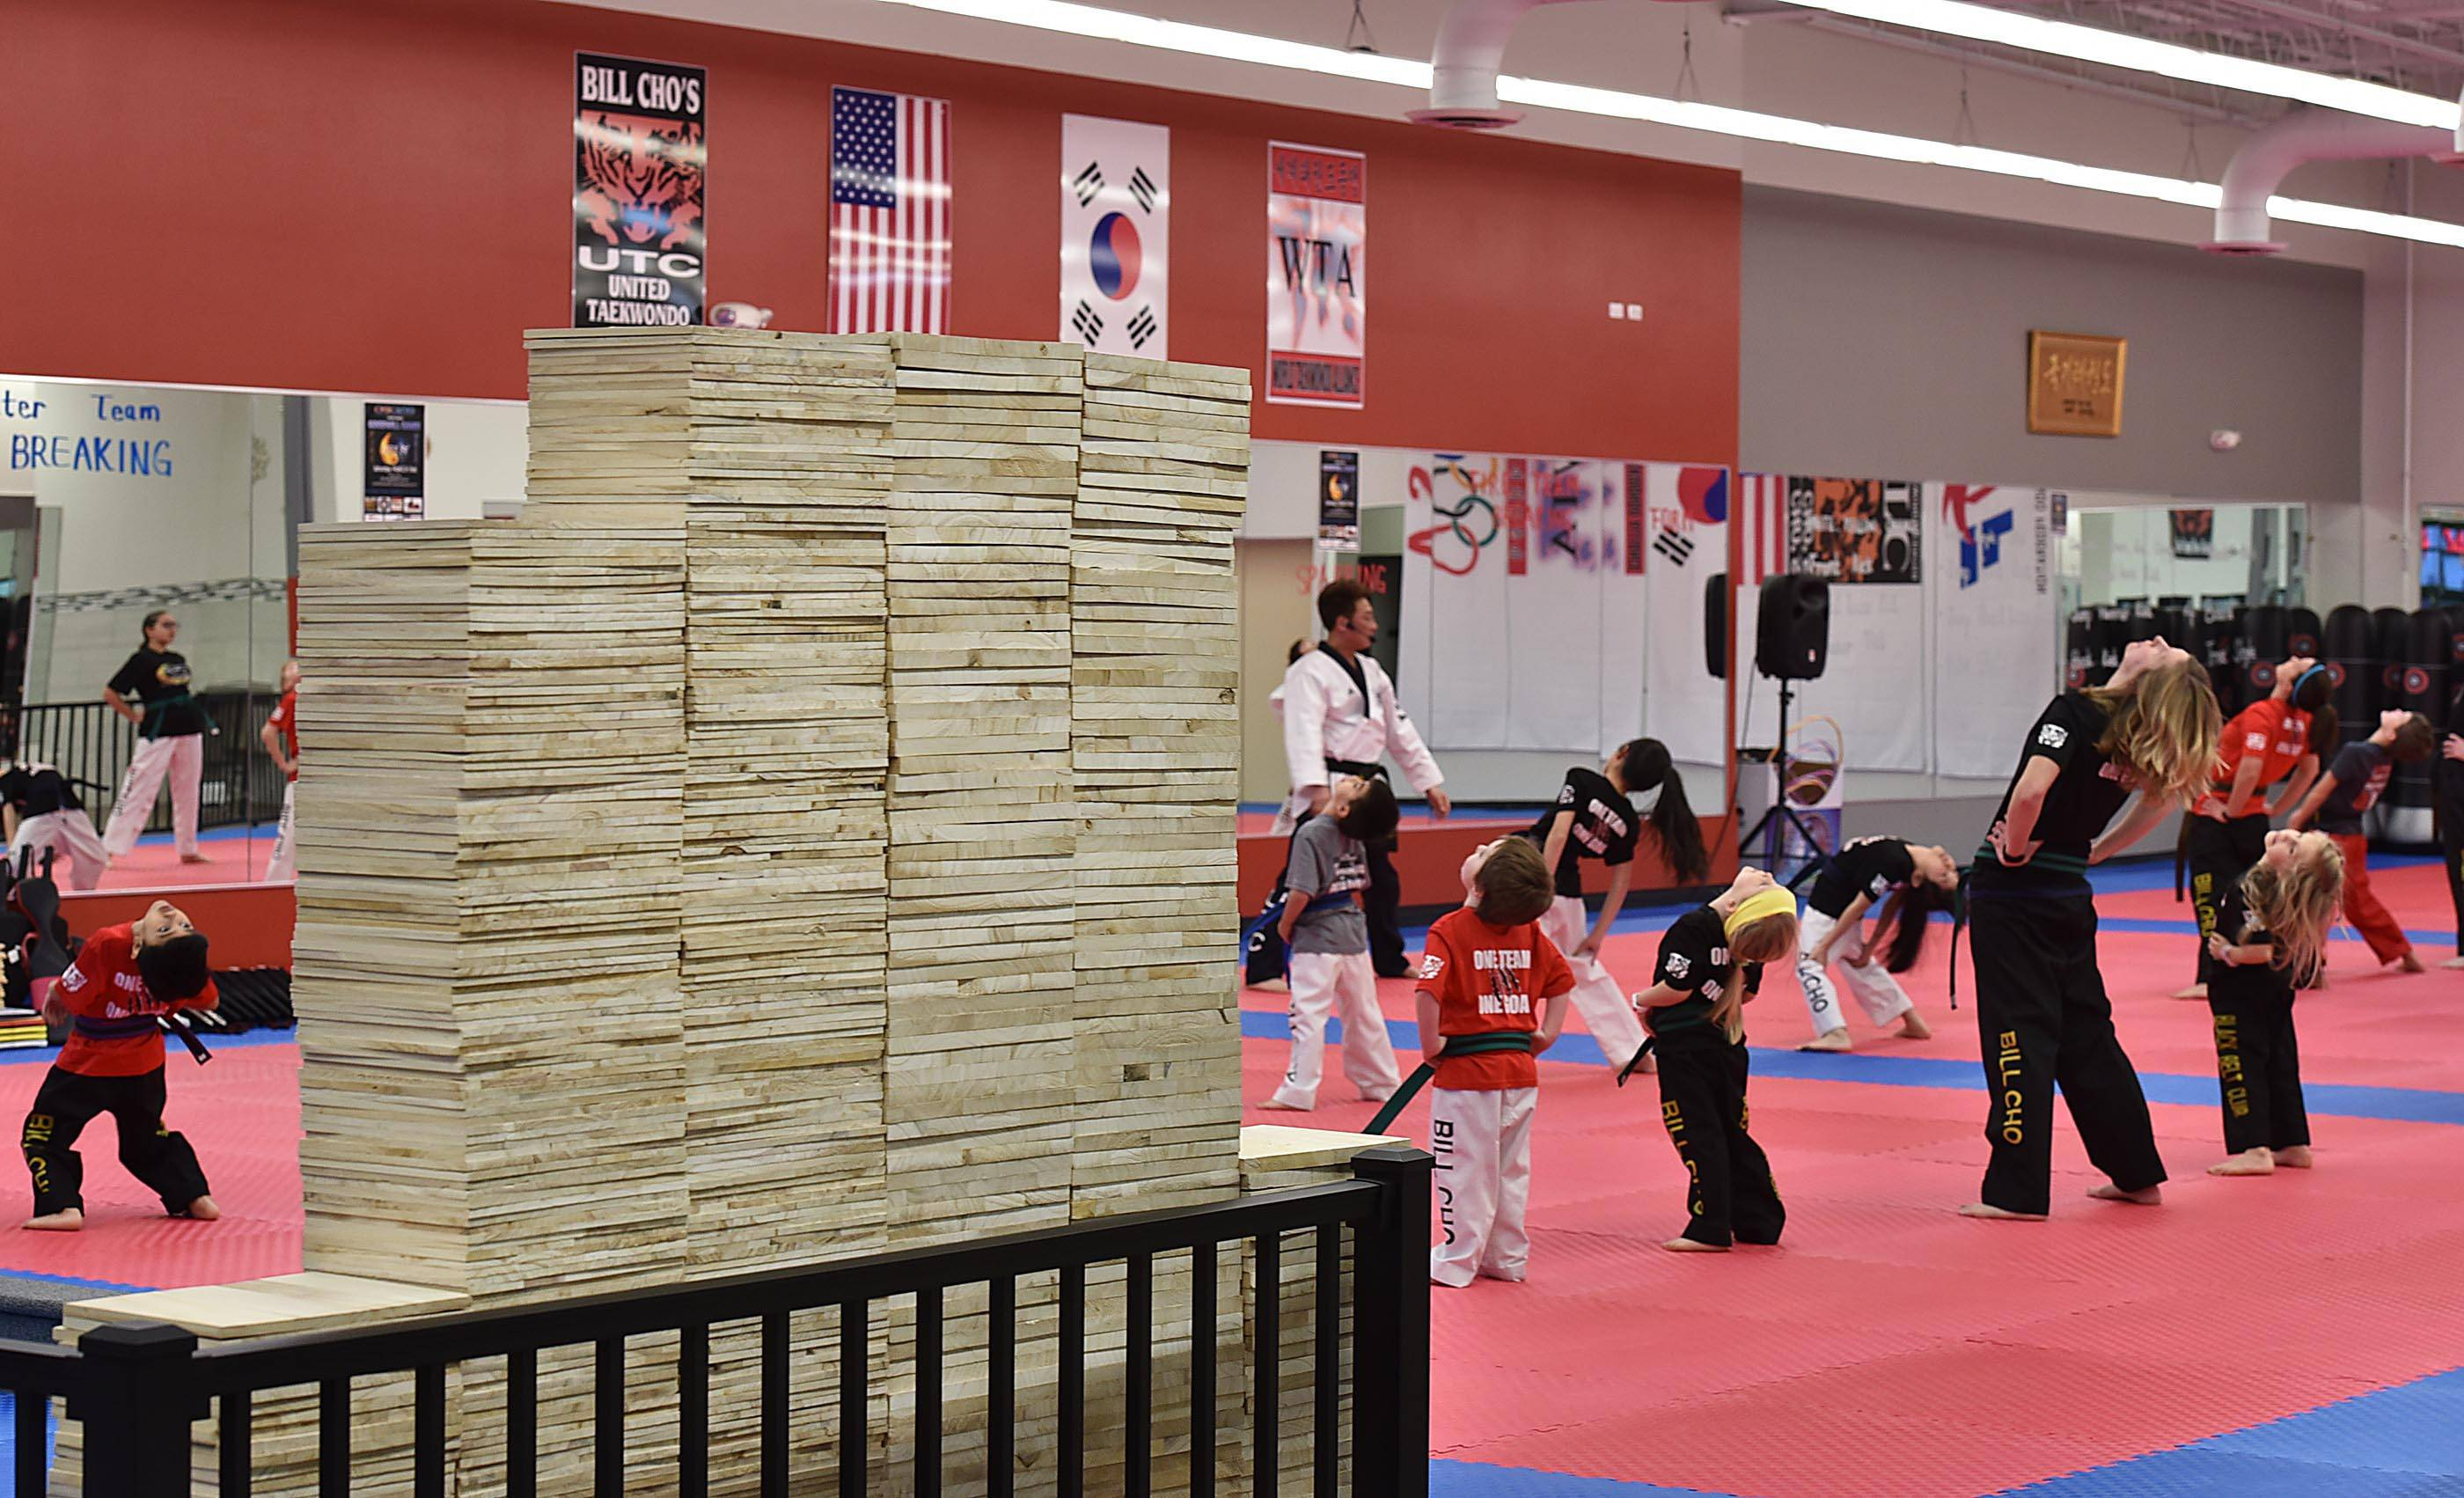 Stacks of boards 6 feet tall wait to be broken during a fundraiser at Bill Cho's United Tae Kwon Do in South Elgin to benefit the police department. Students will break boards and the public is invited to purchase and break a board.